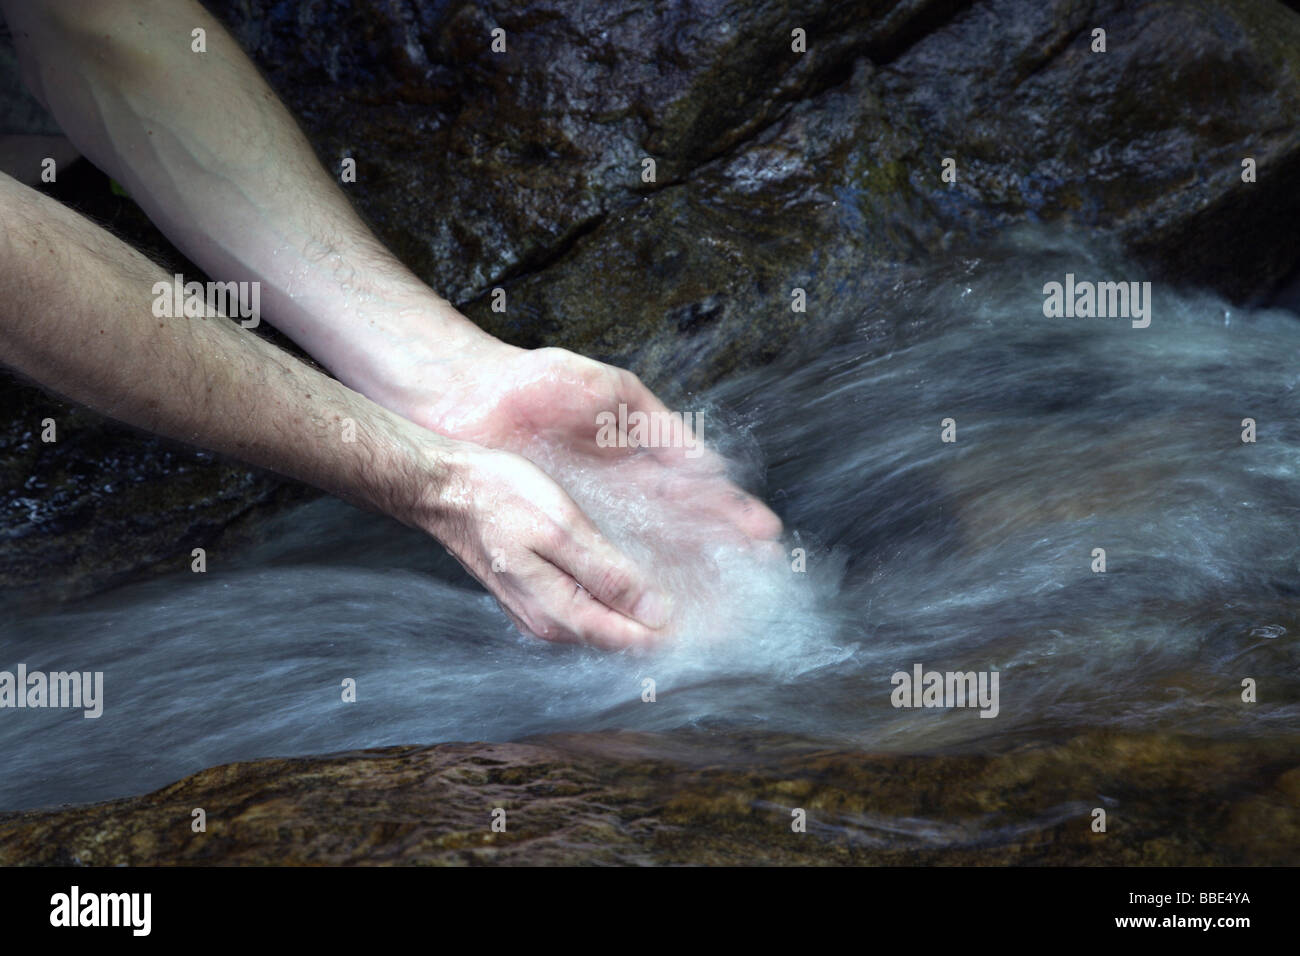 Washing hands in a stream, Todtnau, Black Forest, Germany, Europe - Stock Image